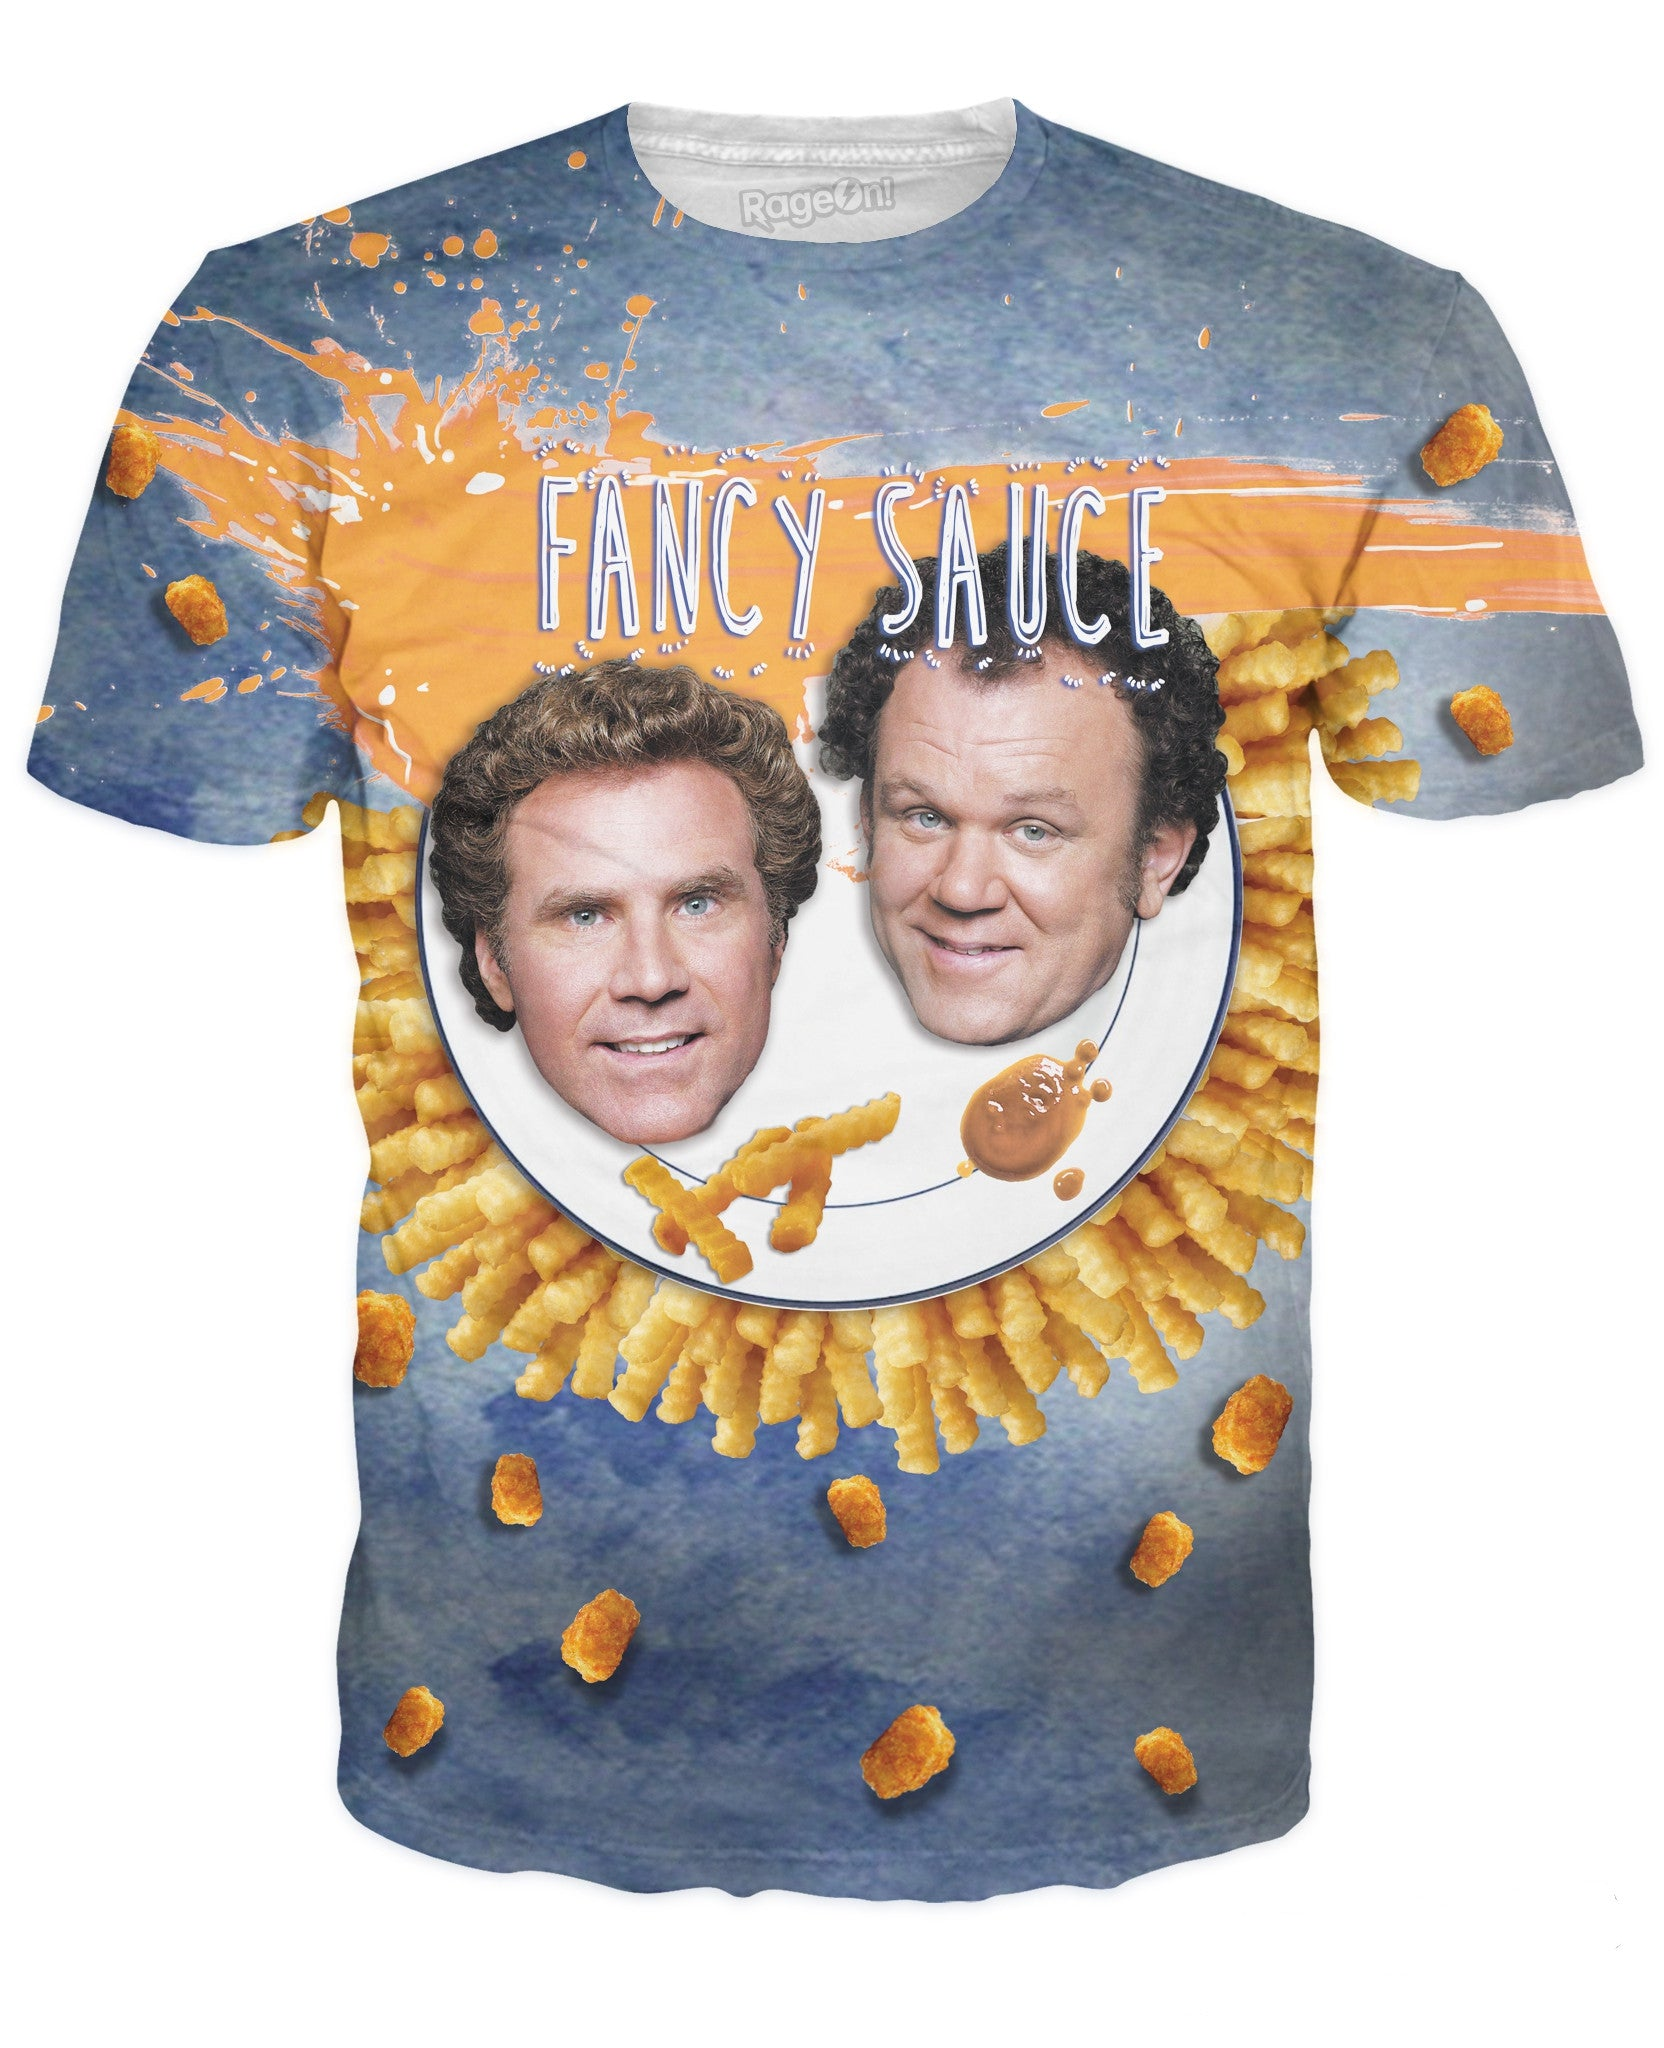 Fancy Sauce T-Shirt